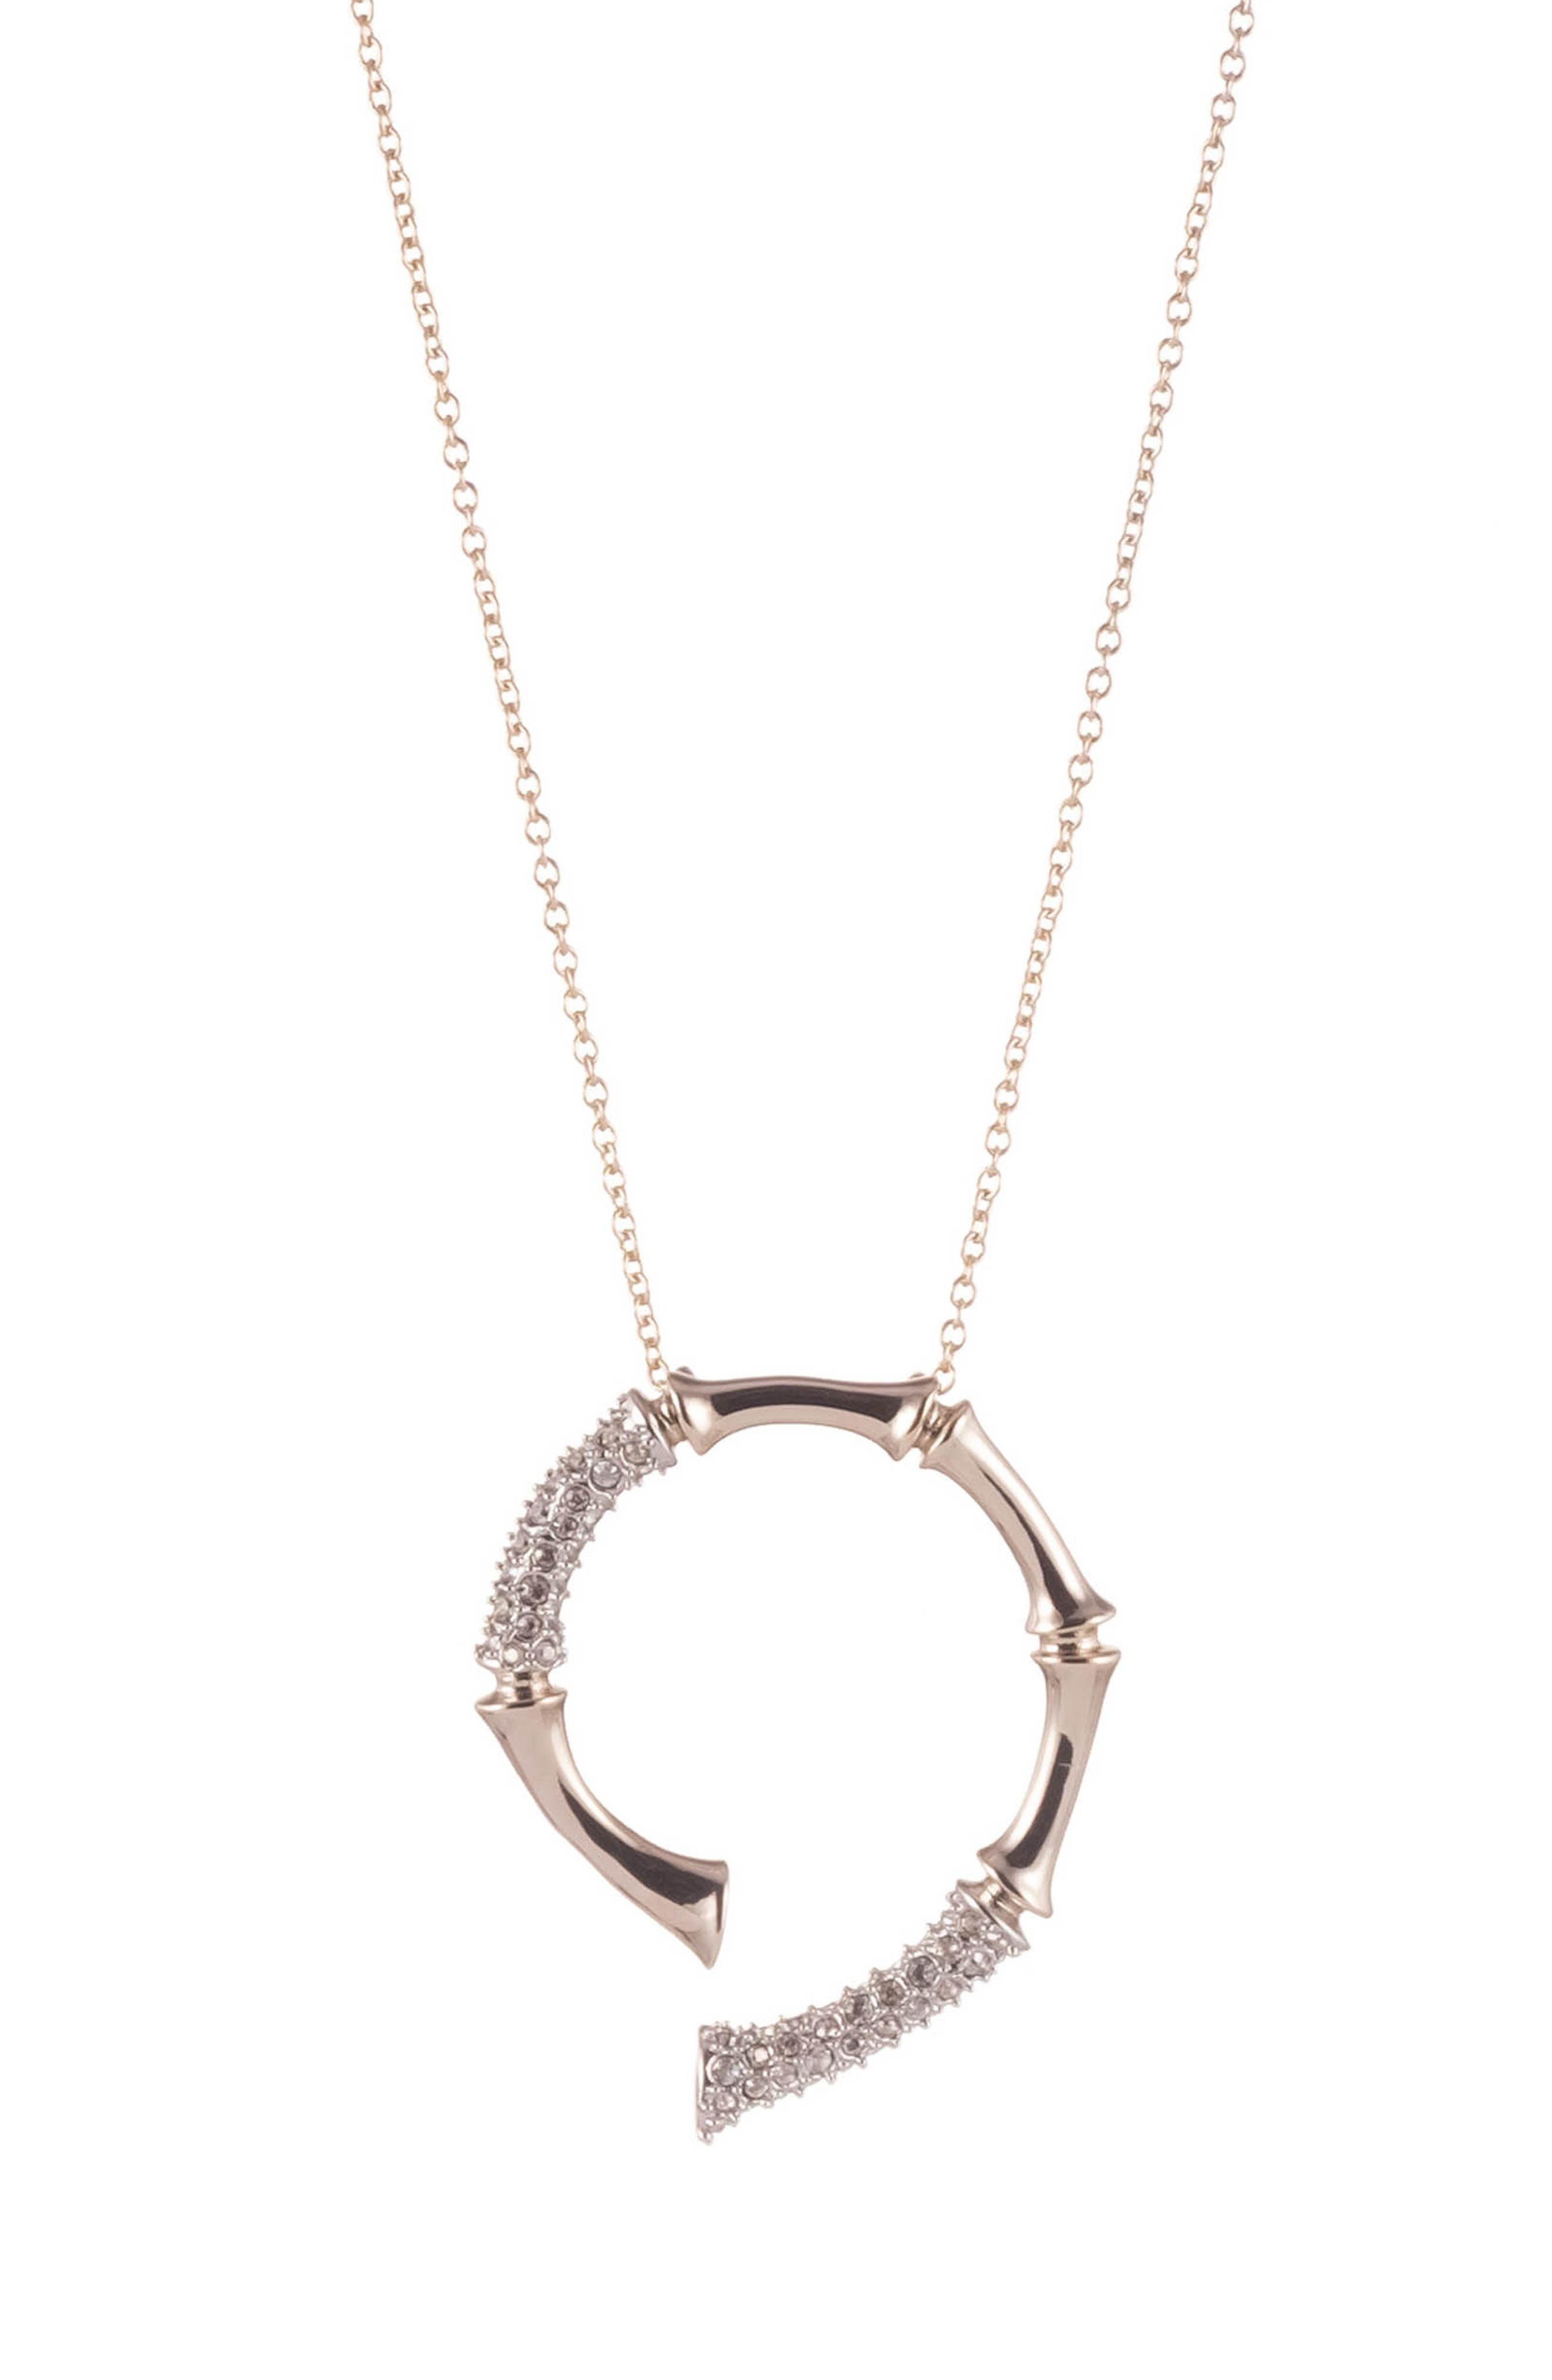 Image of Alexis Bittar Crystal Encrusted Bamboo Spiral Pendant Necklace